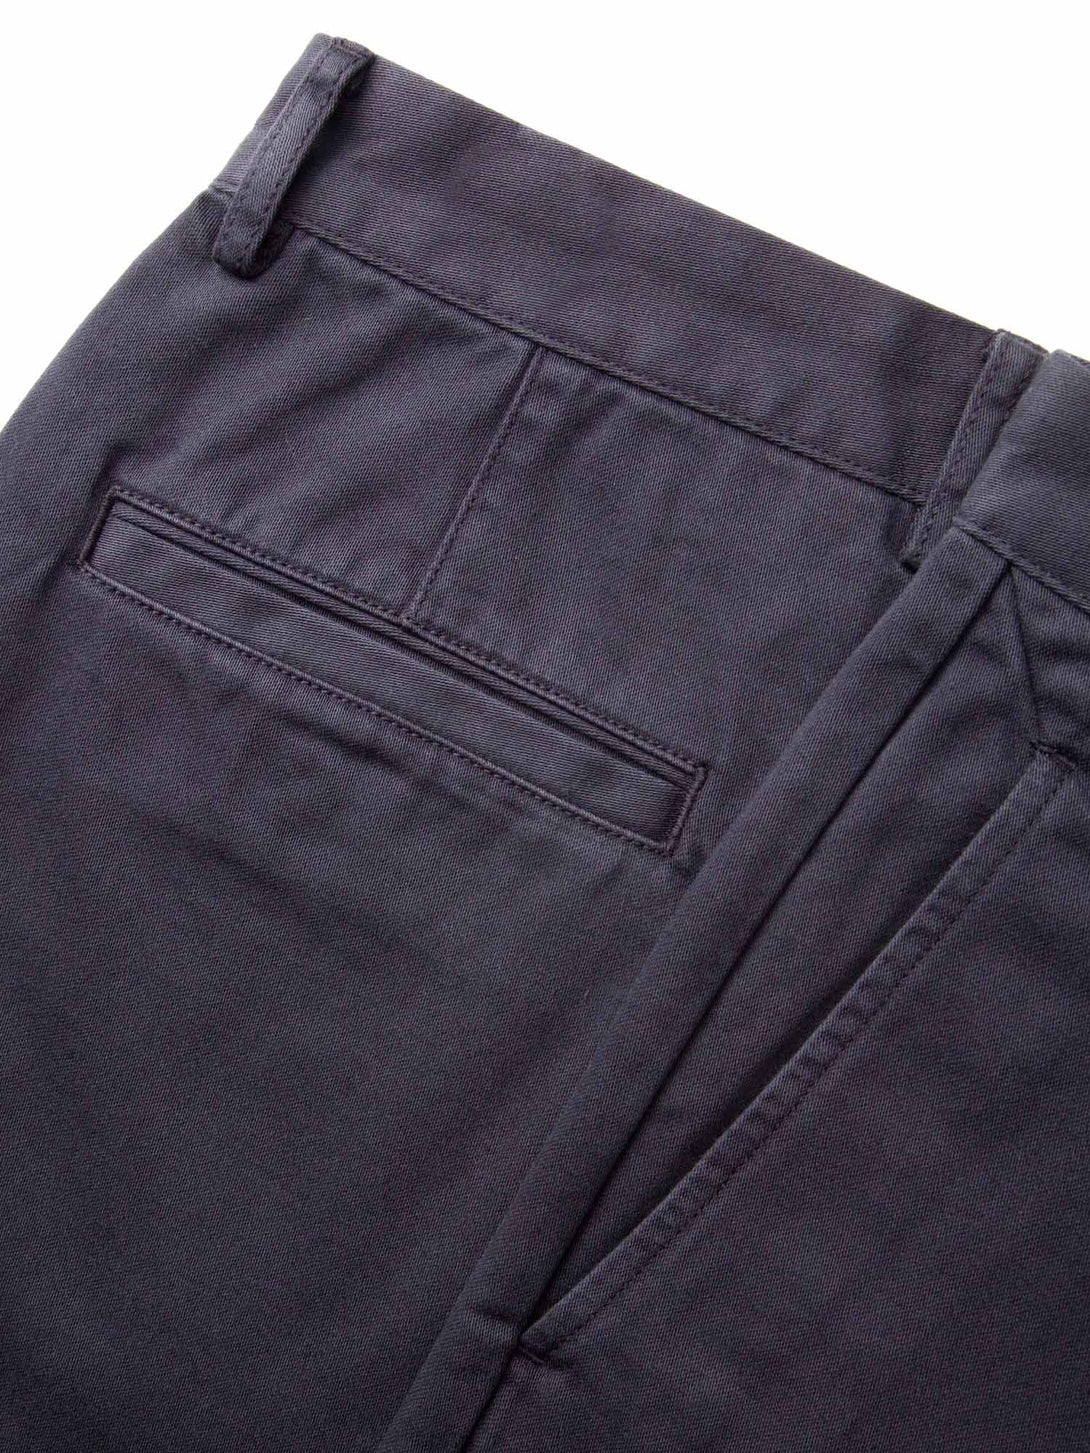 ons garage men's shorts NAVY